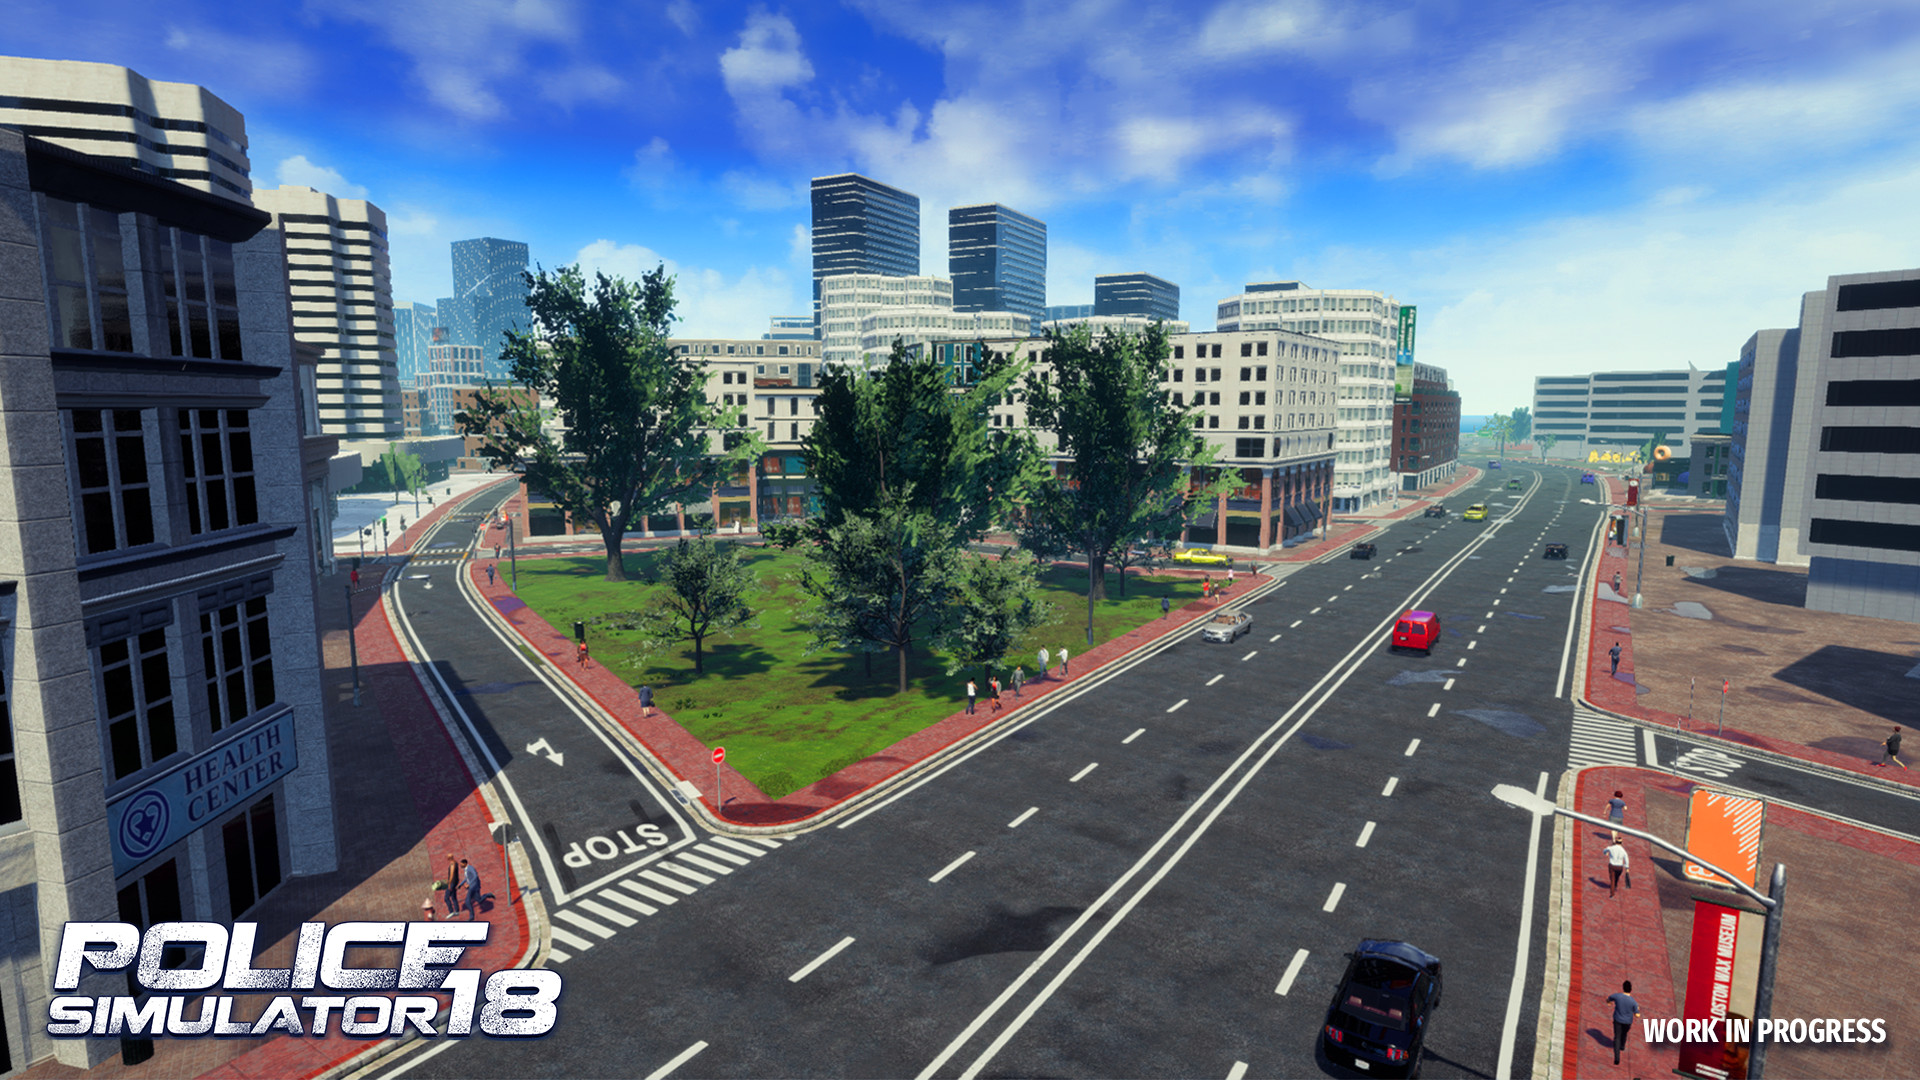 Police Simulator 18 Download Cracked